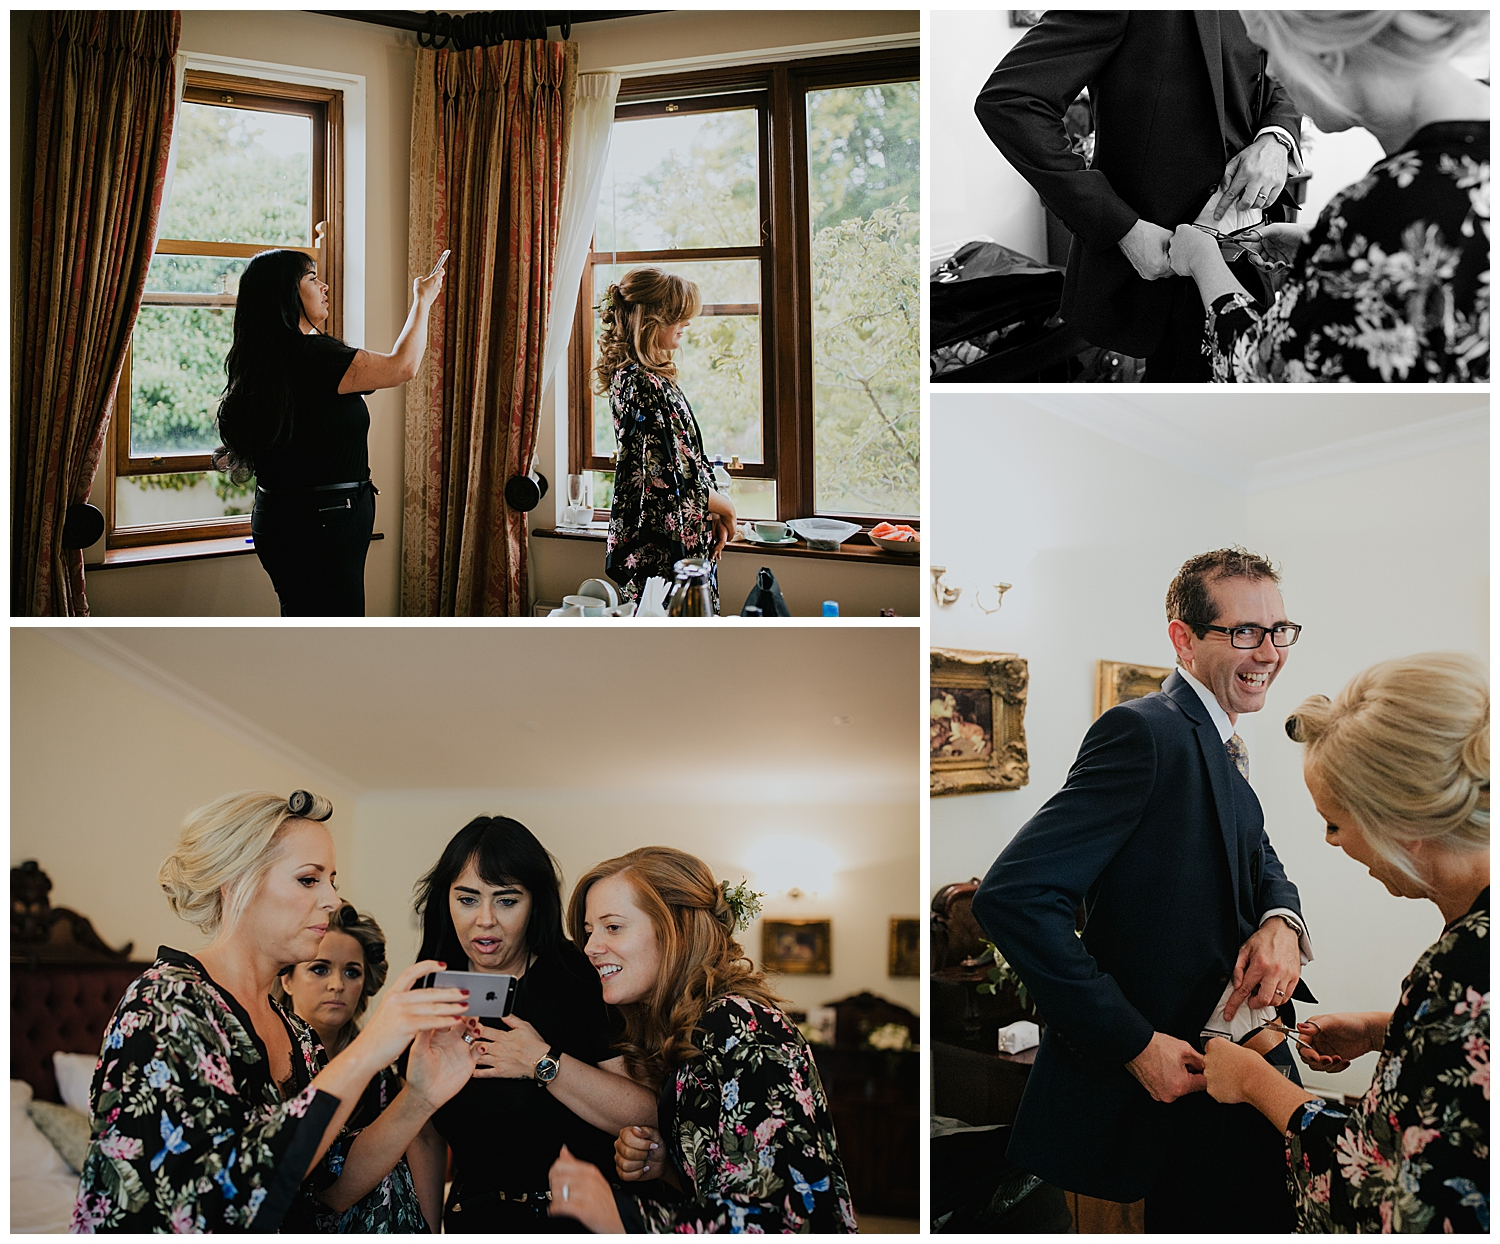 a&c_tinakilly_black_tie_wedding_photographer_livia_figueiredo_11.jpg